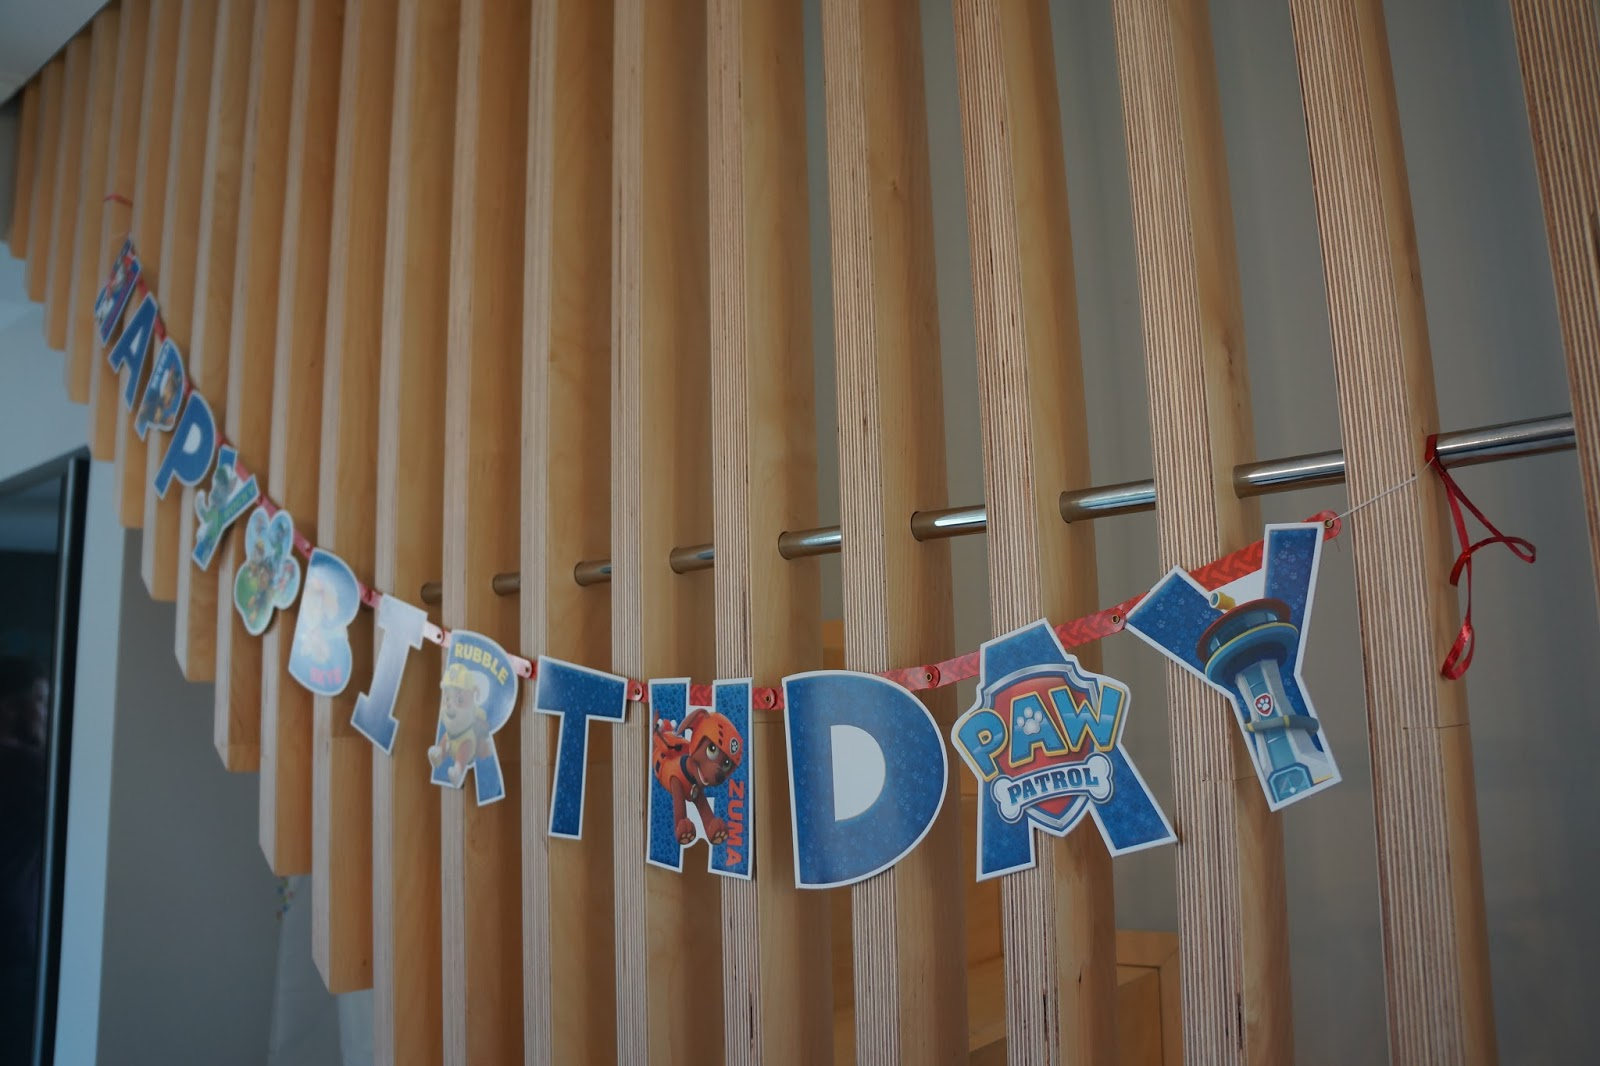 paw patrol happy birthday bunting